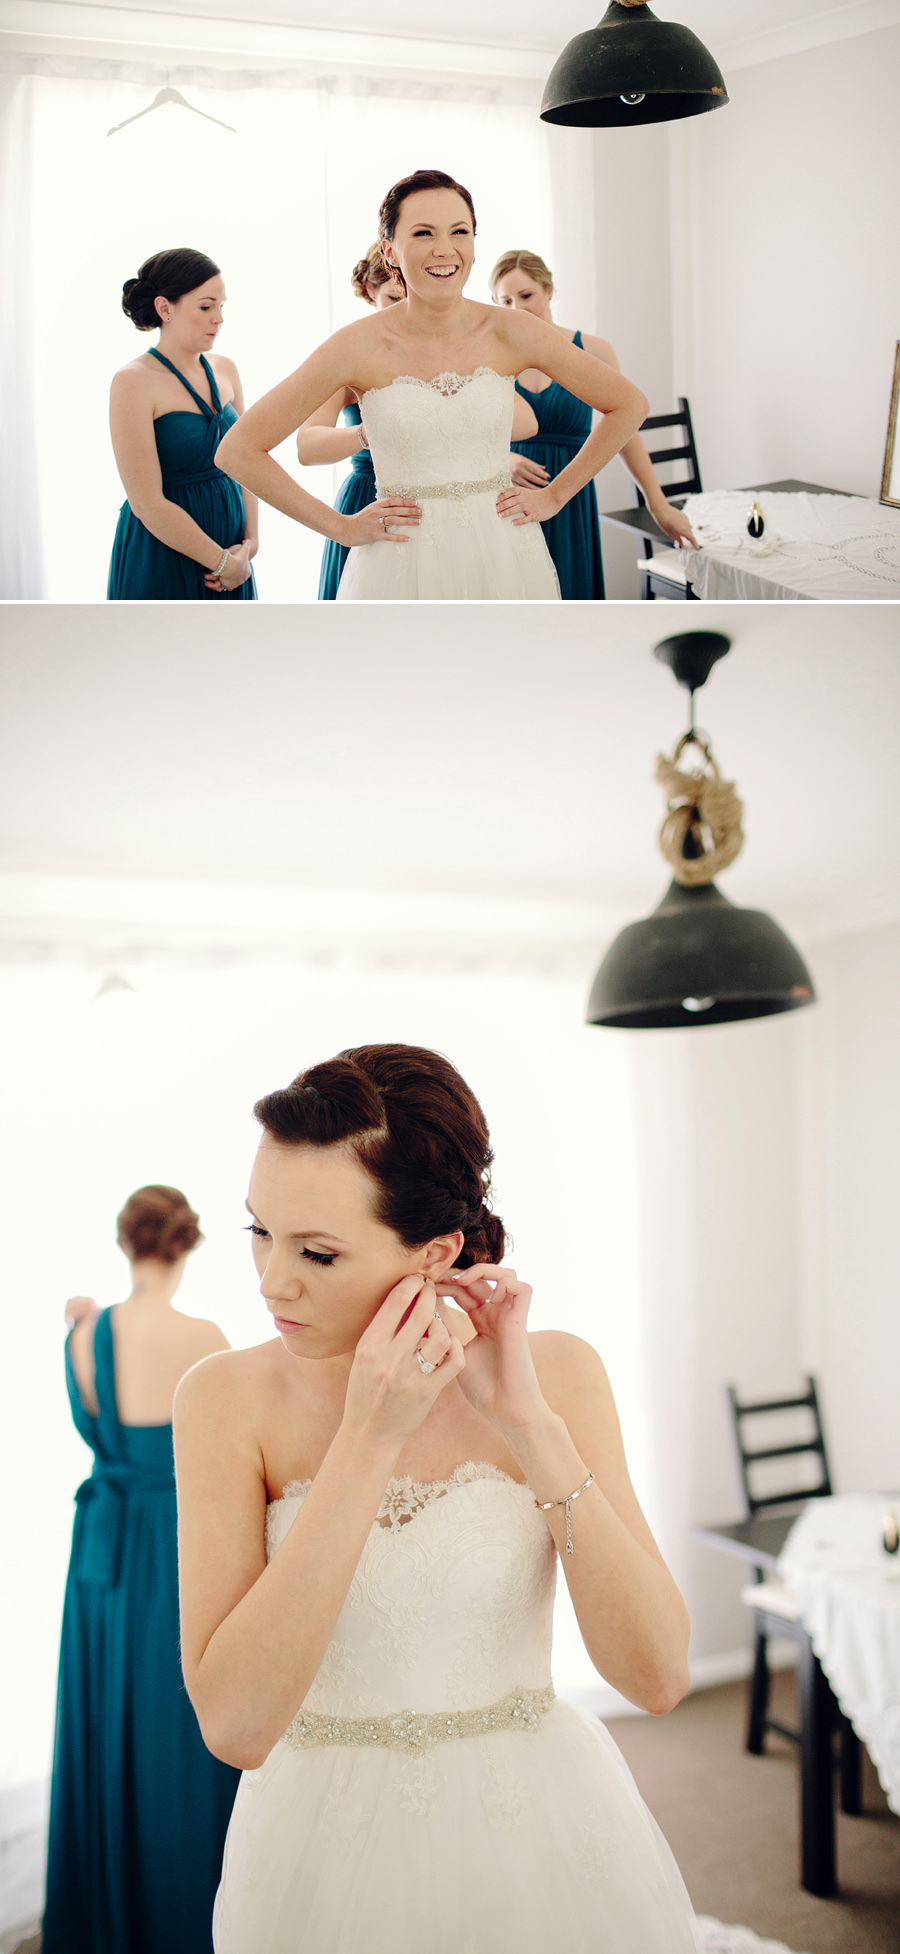 Campbelltown Wedding Photographer: Girls getting ready